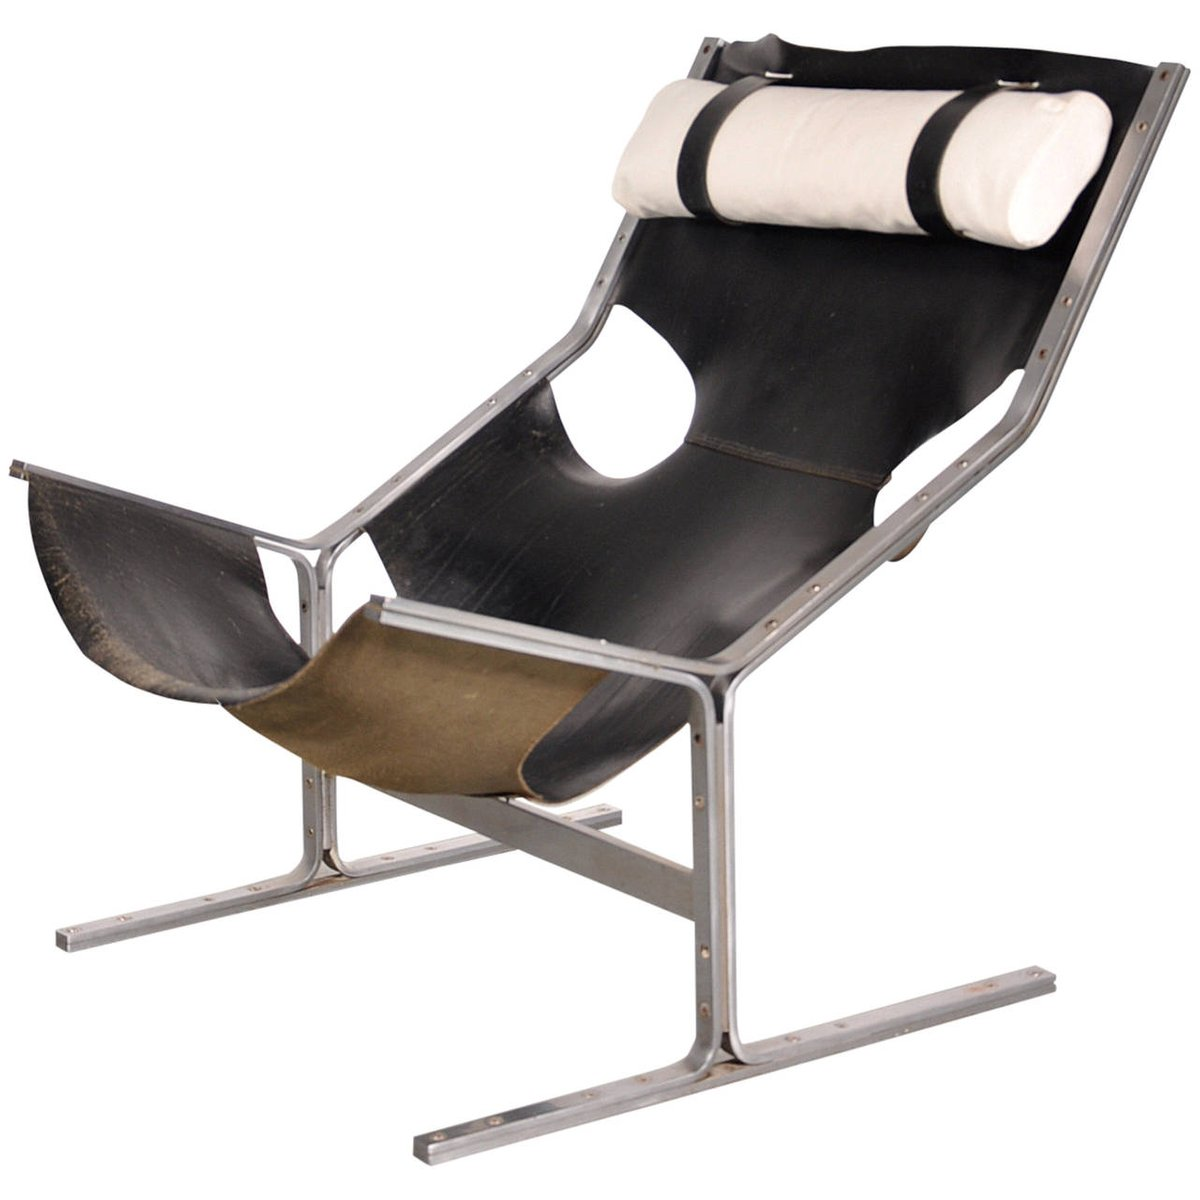 Dutch Leather Lounge Chair from Polak 1960s for sale at